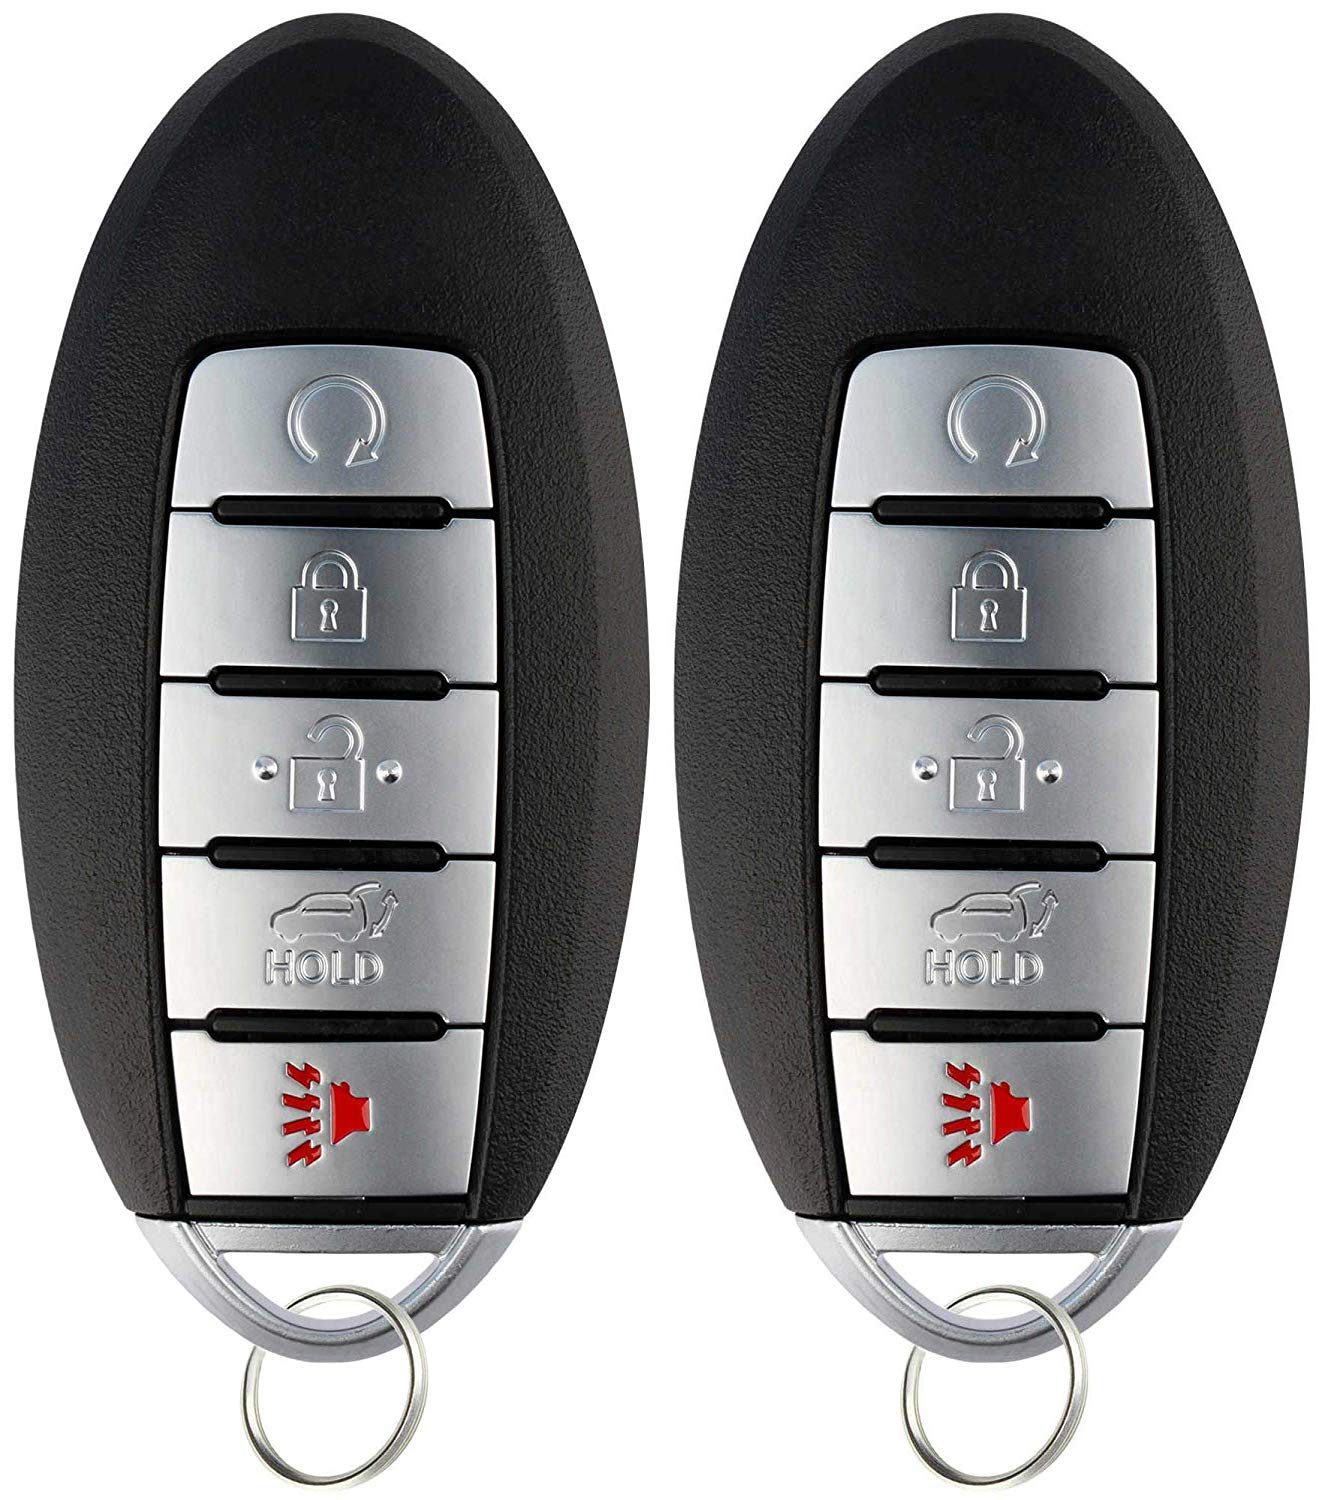 KeylessOption Keyless Entry Remote Start Smart Car Key Fob Alarm for Nissan Pathfinder Murano Infinti QX60 KR5S180144014 Pack of 2